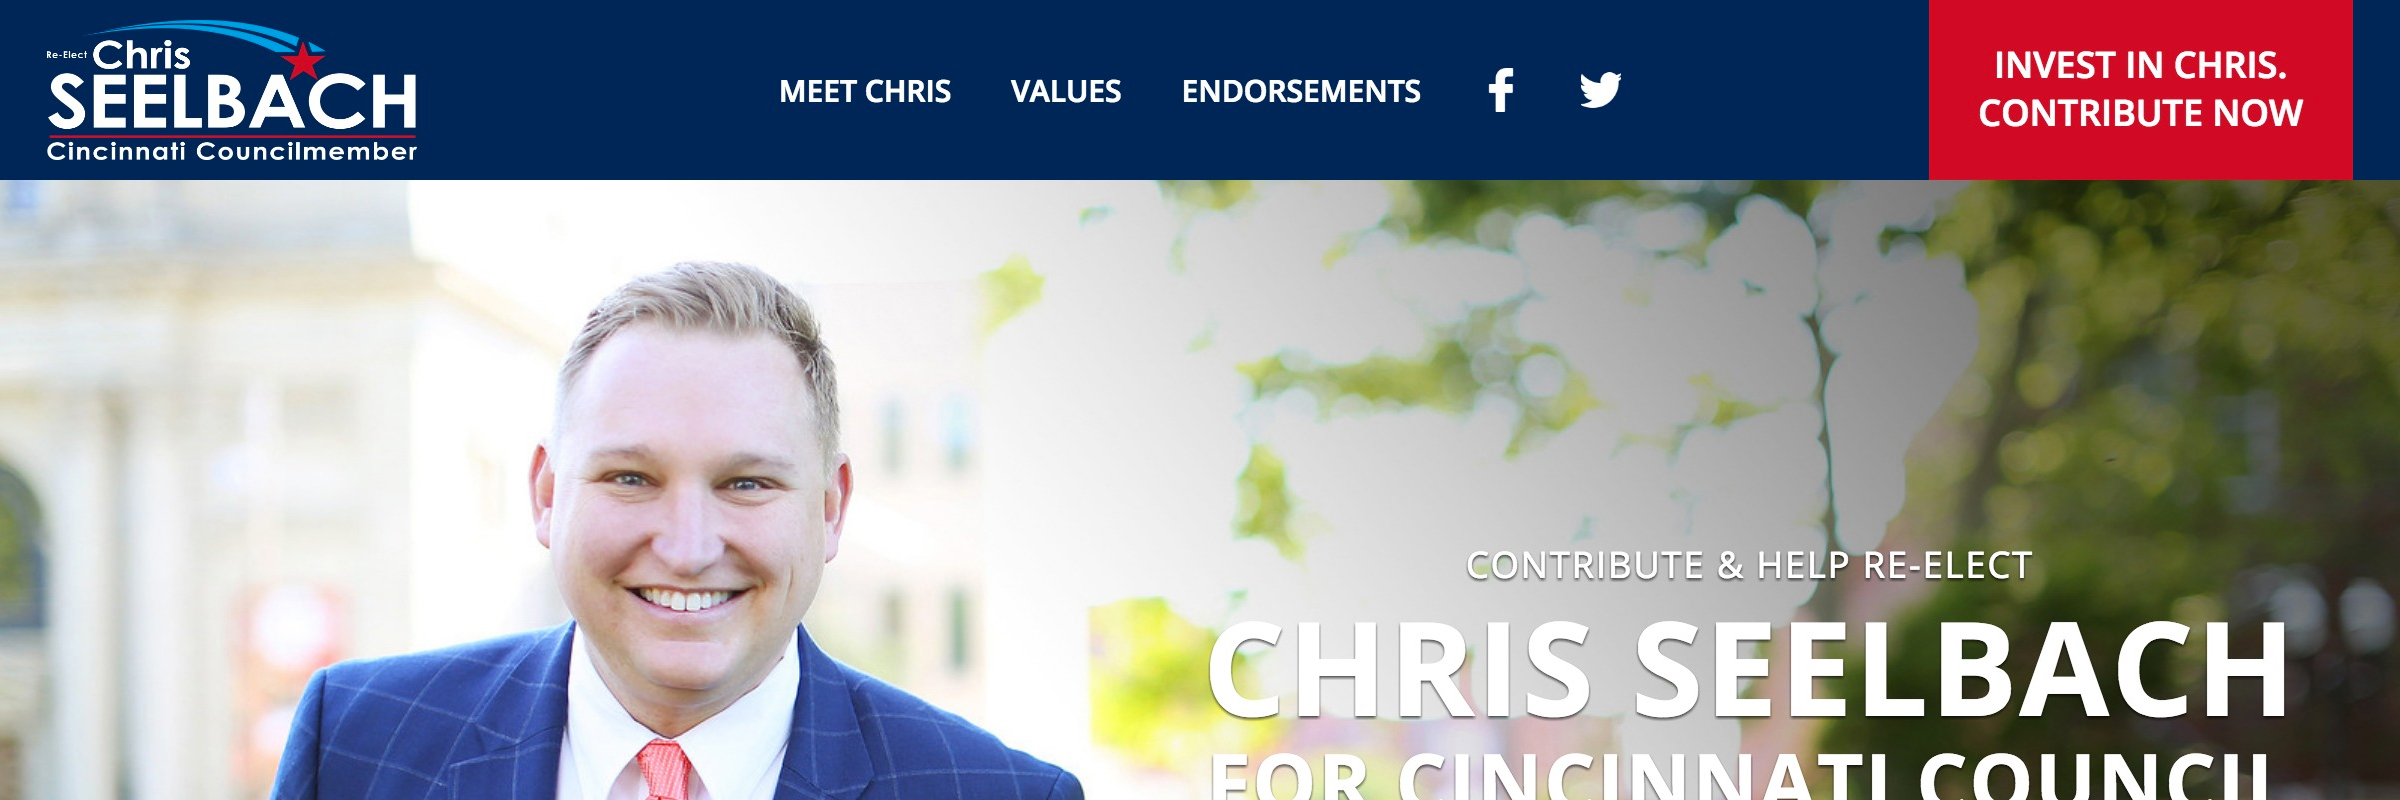 Chris Seelbach For Cincinnati Council